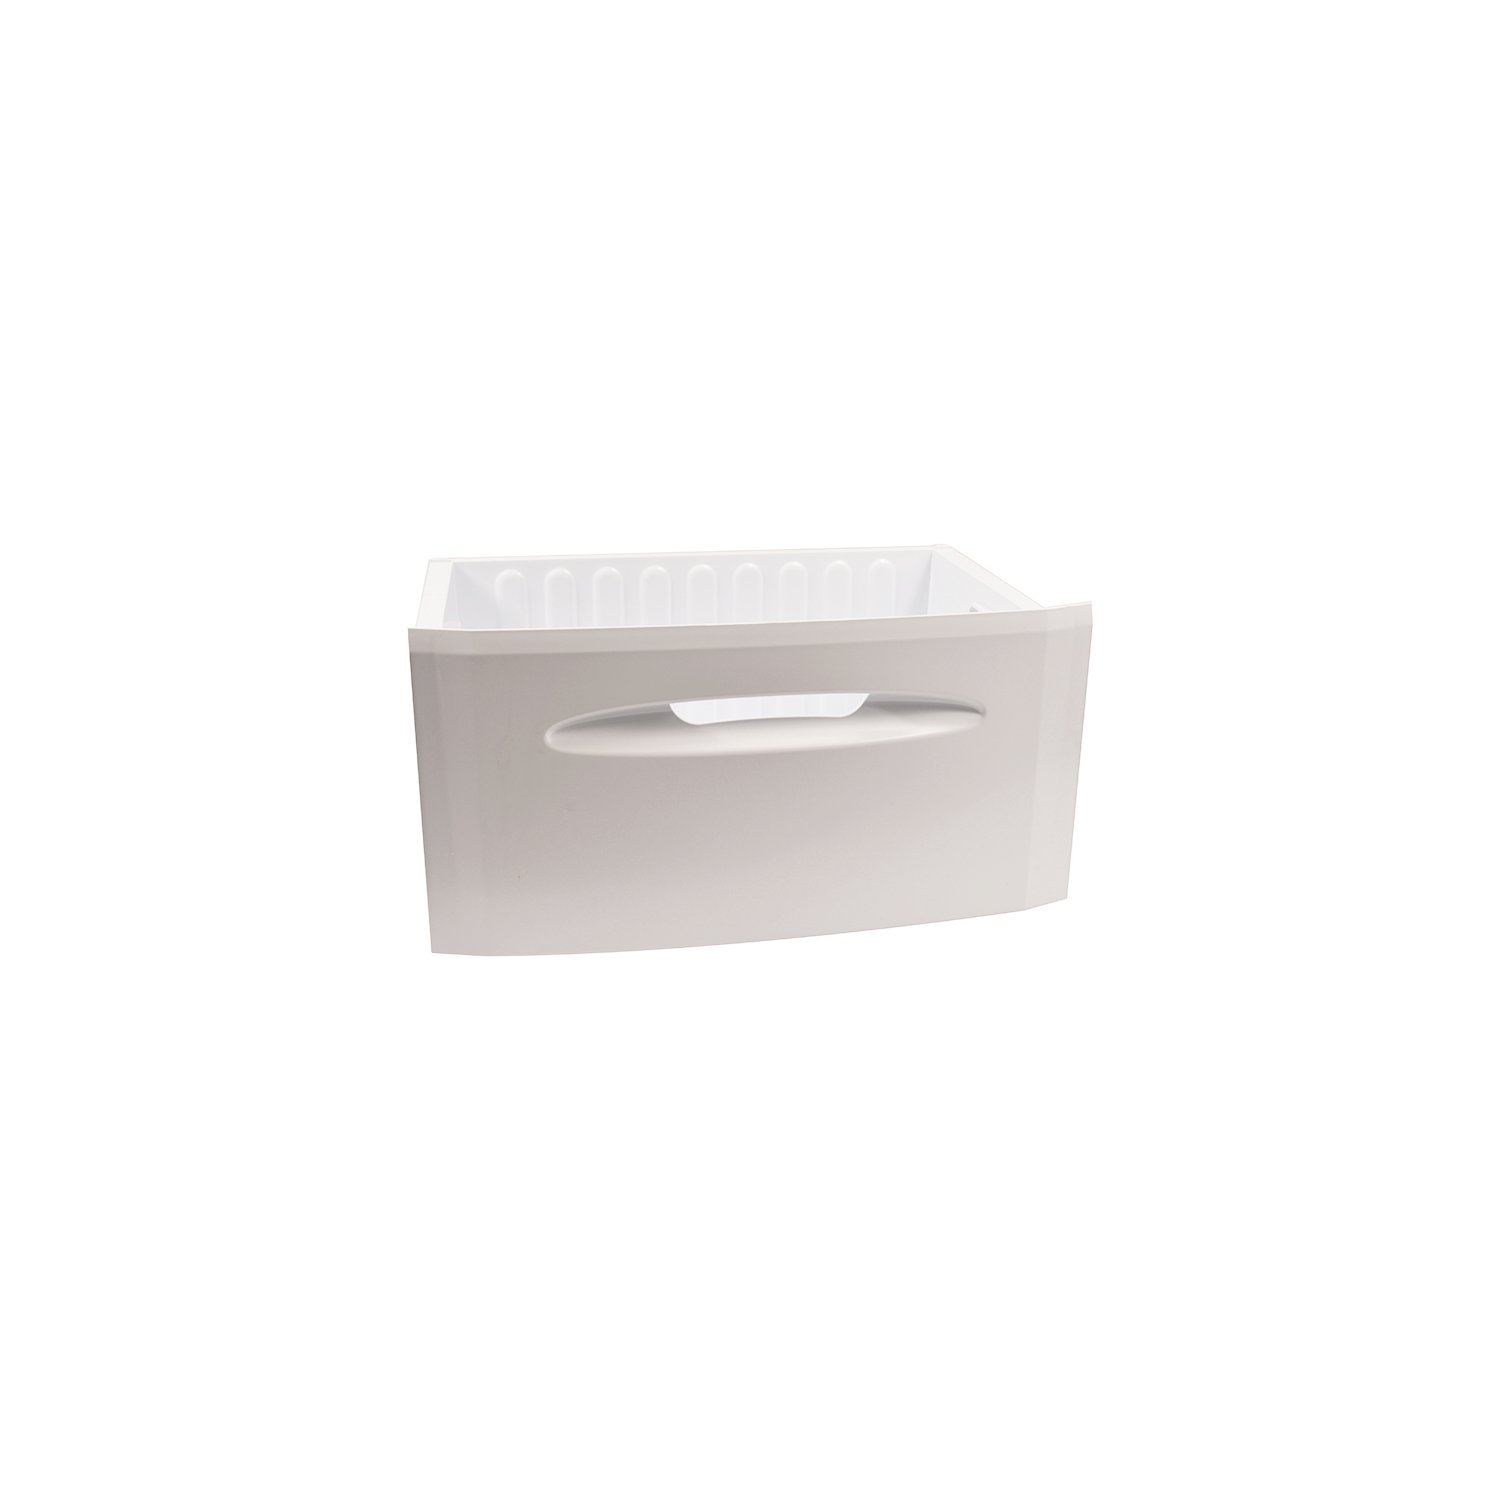 Genuine Hotpoint Freezer Drawer - C00292477